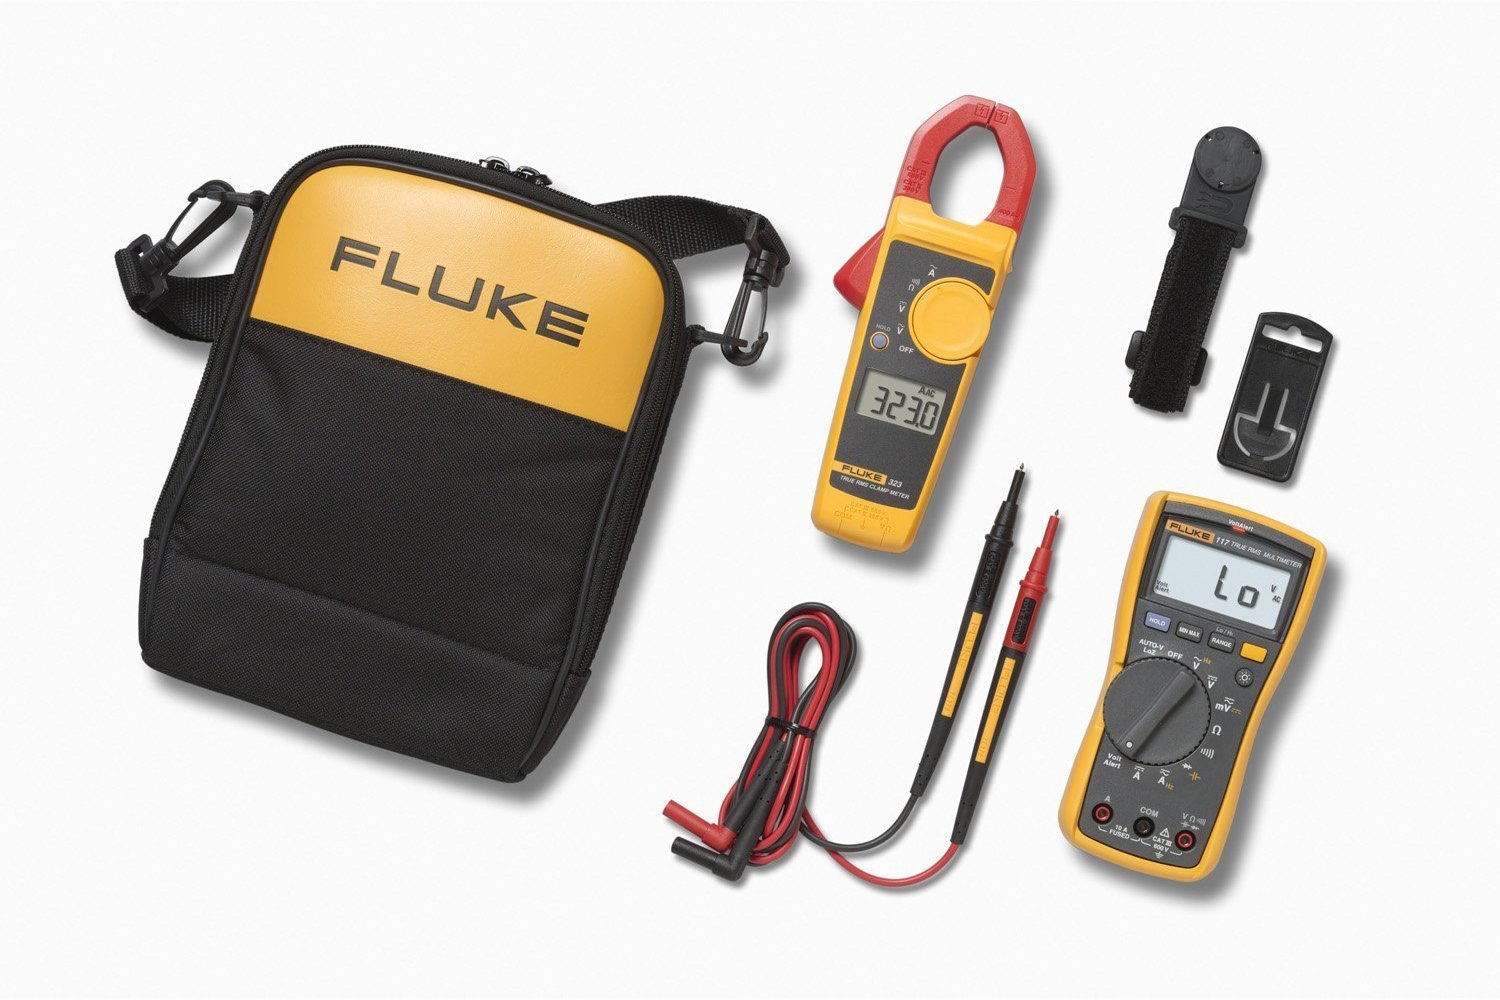 Fluke 117/323 KIT Multimeter and Clamp Meter Combo Kit [Fluke 117 Multimeter / Fluke 323 Clamp Combo Kit]